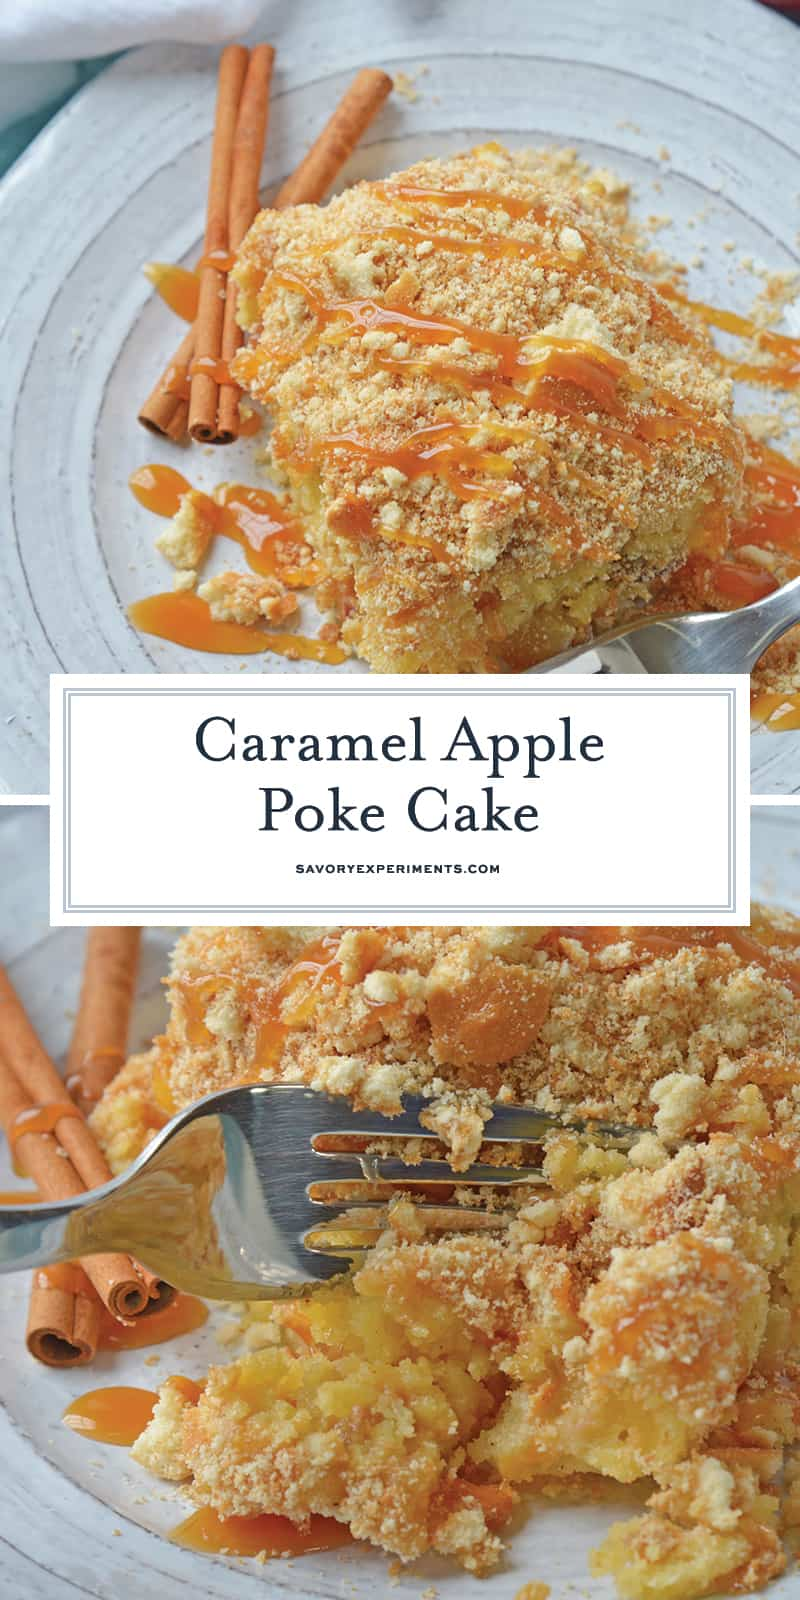 This Caramel Apple Poke Cake is one of the best recipes using boxed cake mix! With tons of apples, and cinnamon, this from scratch apple cake will become an instant family favorite! #pokecakerecipes #recipesusingboxedcakemix #applecake #easypokecakerecipes #savoryexperiments www.savoryexperiments.com